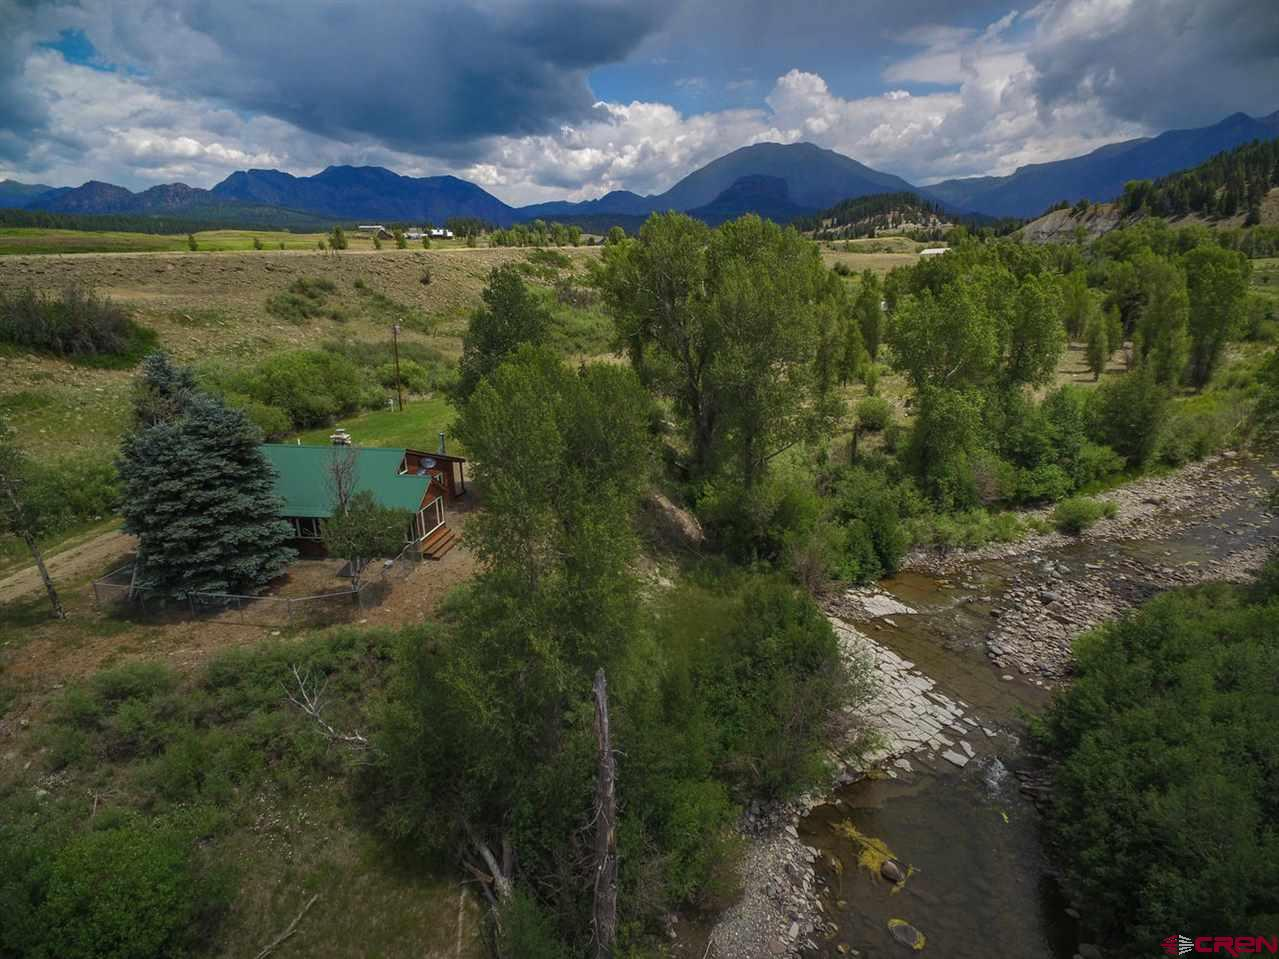 Don't miss this rare opportunity to purchase a 7 acre riverfront property in the Upper Piedra River Valley. This lovely retreat was remodeled in 2003. The home is perched a few steps away from the river where a private swimming/fishing hole awaits. This property has many unique and excellent features including water rights from the Baird Spring, an upper pasture with stunning, up close views on the San Juan Mountains, and privacy. Please call today to set up your private viewing of this fantastic property.